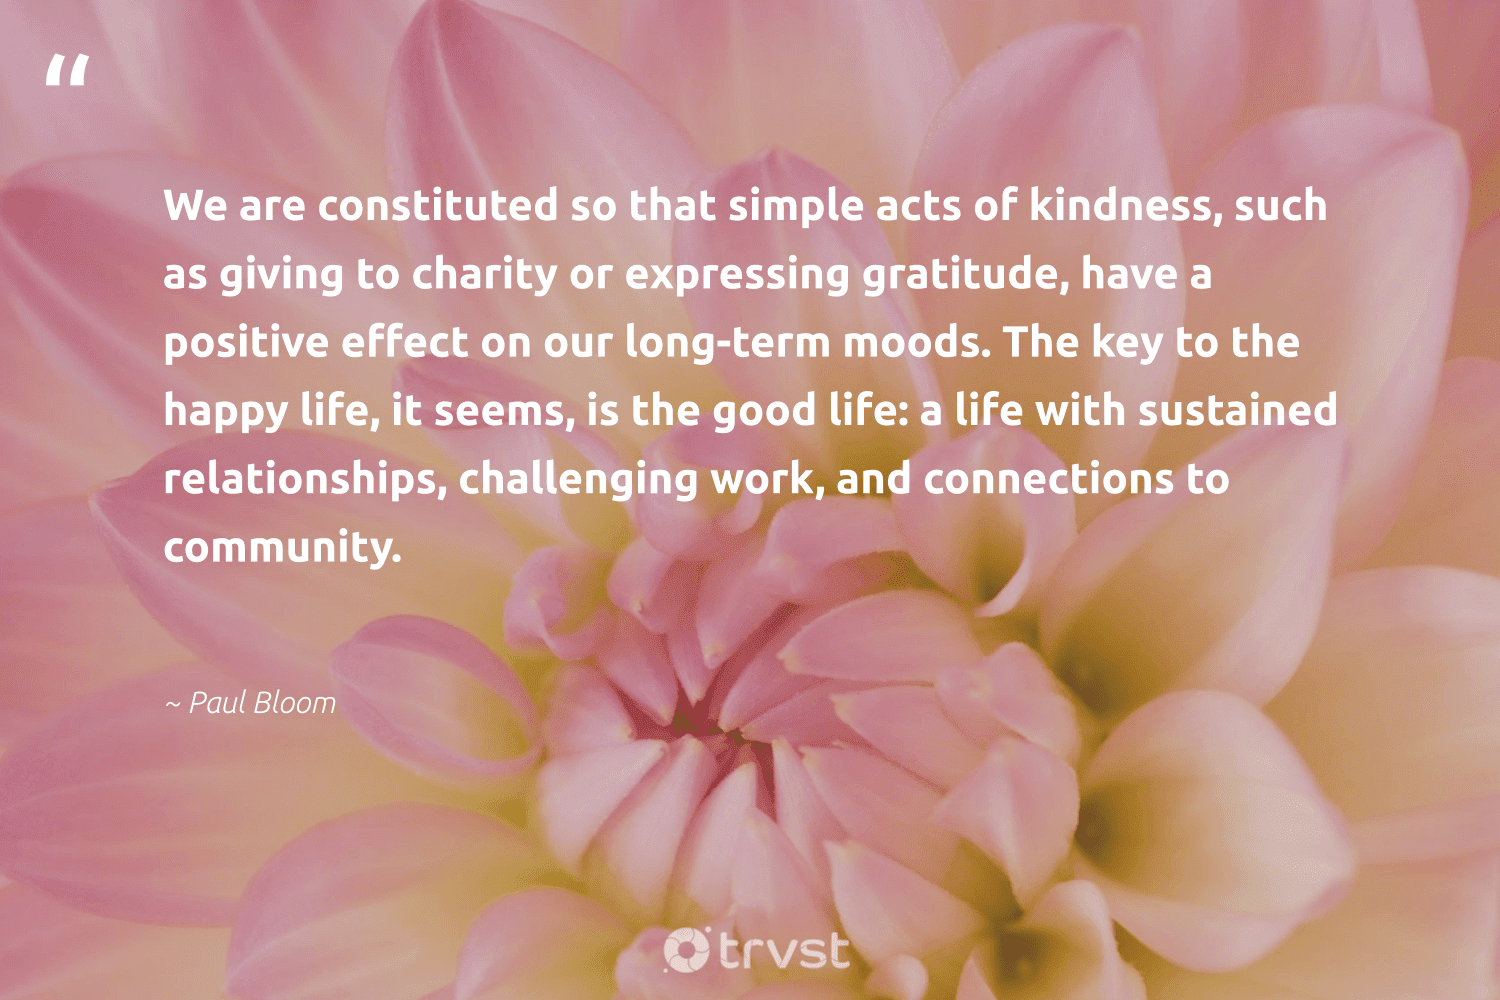 """""""We are constituted so that simple acts of kindness, such as giving to charity or expressing gratitude, have a positive effect on our long-term moods. The key to the happy life, it seems, is the good life: a life with sustained relationships, challenging work, and connections to community.""""  - Paul Bloom #trvst #quotes #gratitude #happy #equalopportunity #dotherightthing #weareallone #bethechange #dogood #changetheworld #workingtogether #thinkgreen"""